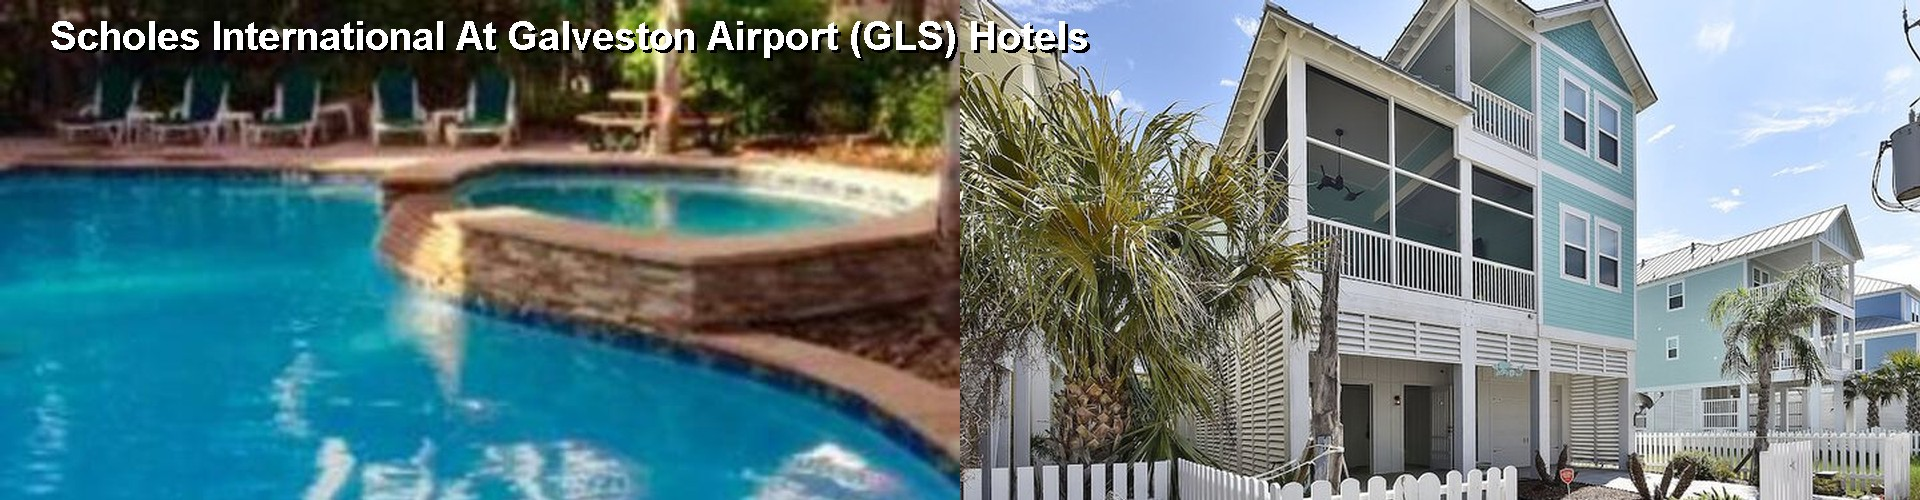 5 Best Hotels near Scholes International At Galveston Airport (GLS)